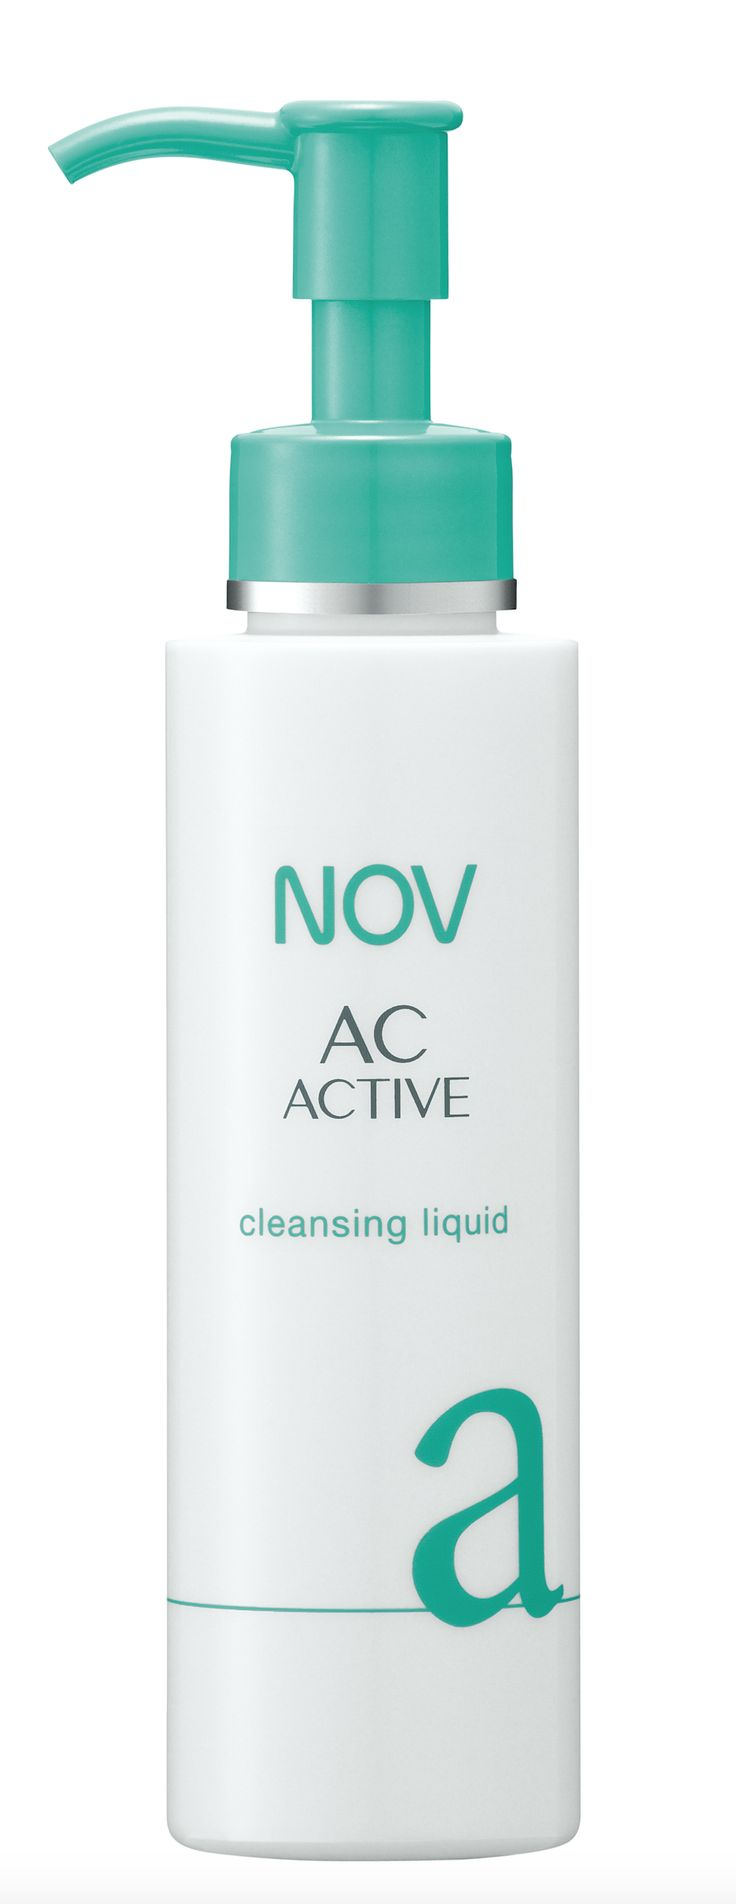 NOV AC Active Cleansing Liquid: This cleansing liquid is a liquid makeup remover that lifts up and removes old keratin/sebum and clogging of your pores. AHA (glycolic acid: wetting agent) combination. This is a vitamin C and E derivative (dl-a-tocopherol,2-L-ascorbic acid and phosphoric acid diester potassium salt: wetting agent) combination.